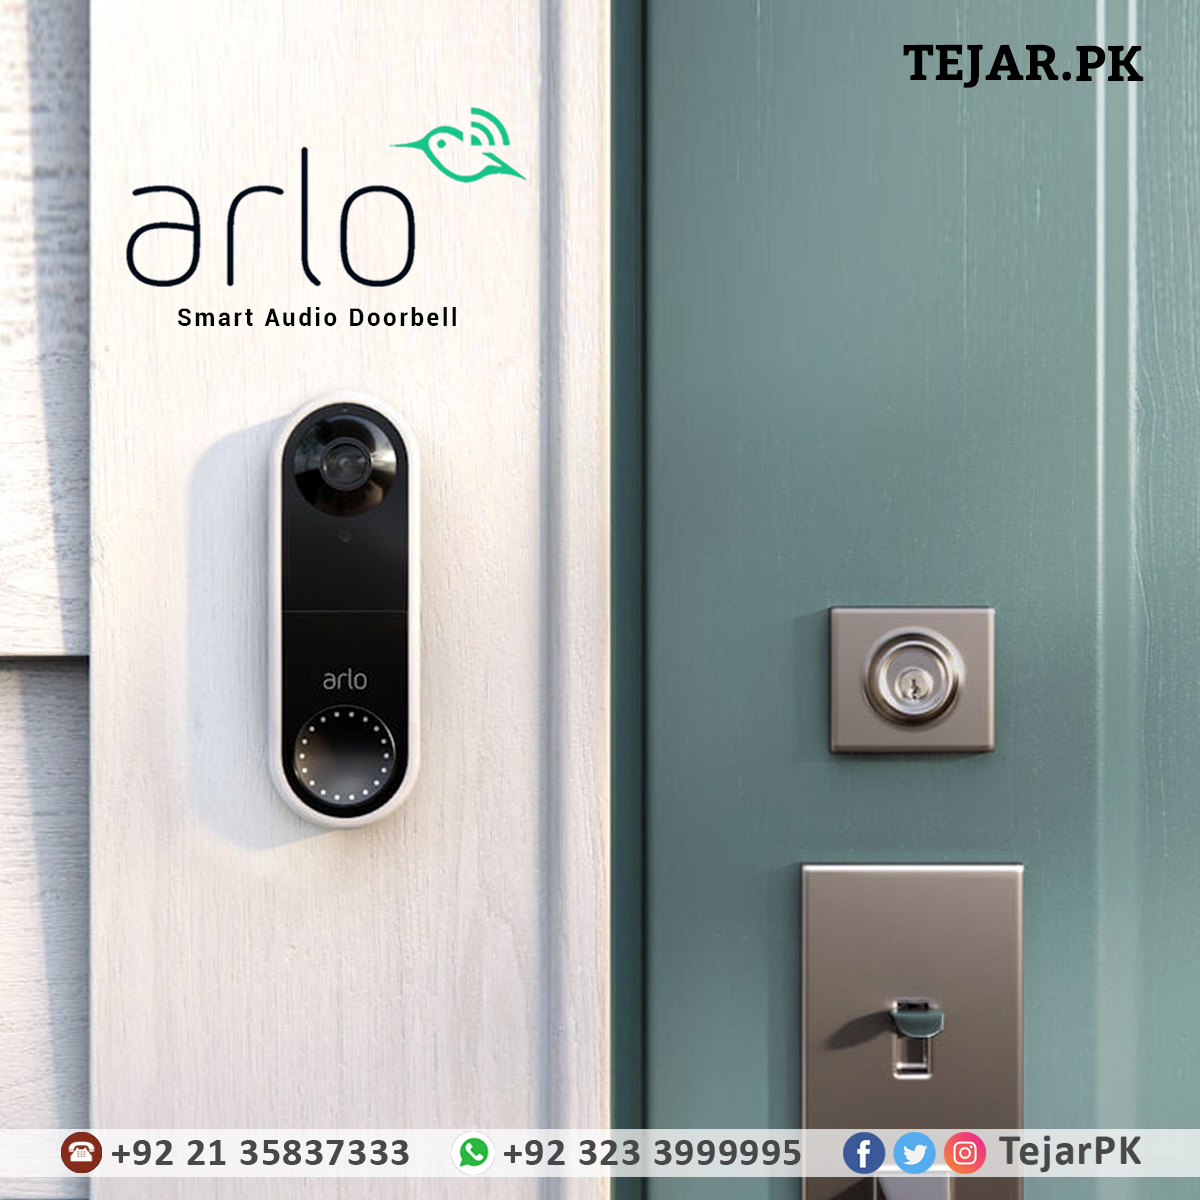 Arlo Smart Audio Doorbell | free Classified | Free Advertising | free classified ads